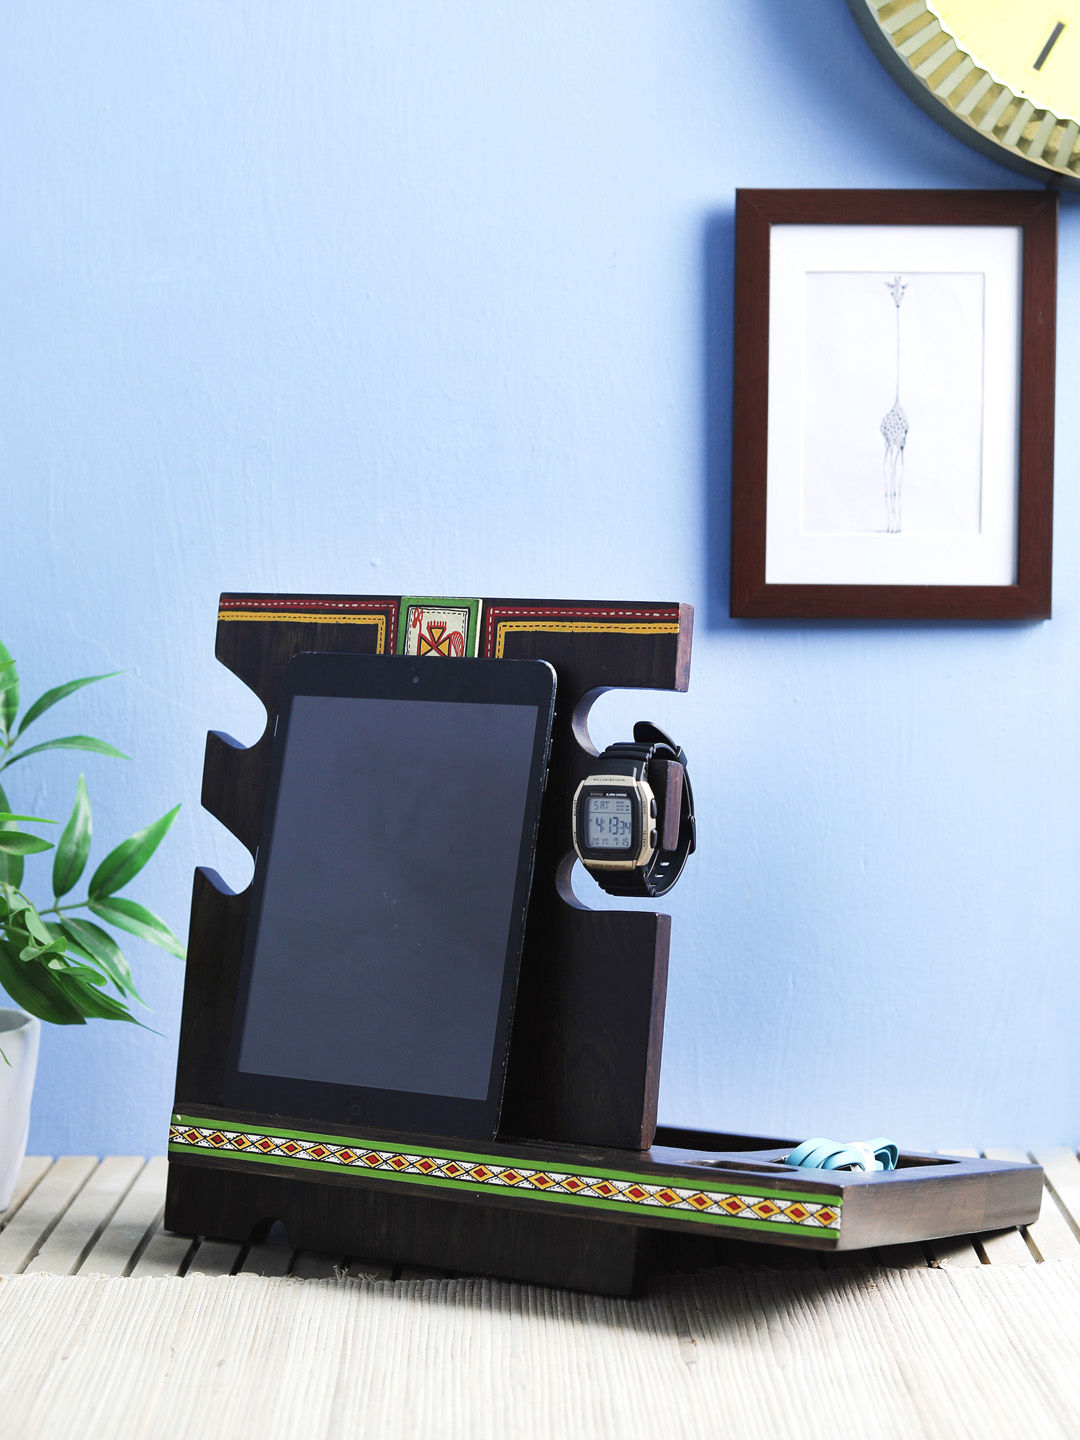 Wooden Mobile/Tab/Ipad Stand with Spectacle Holder Desk Organizer